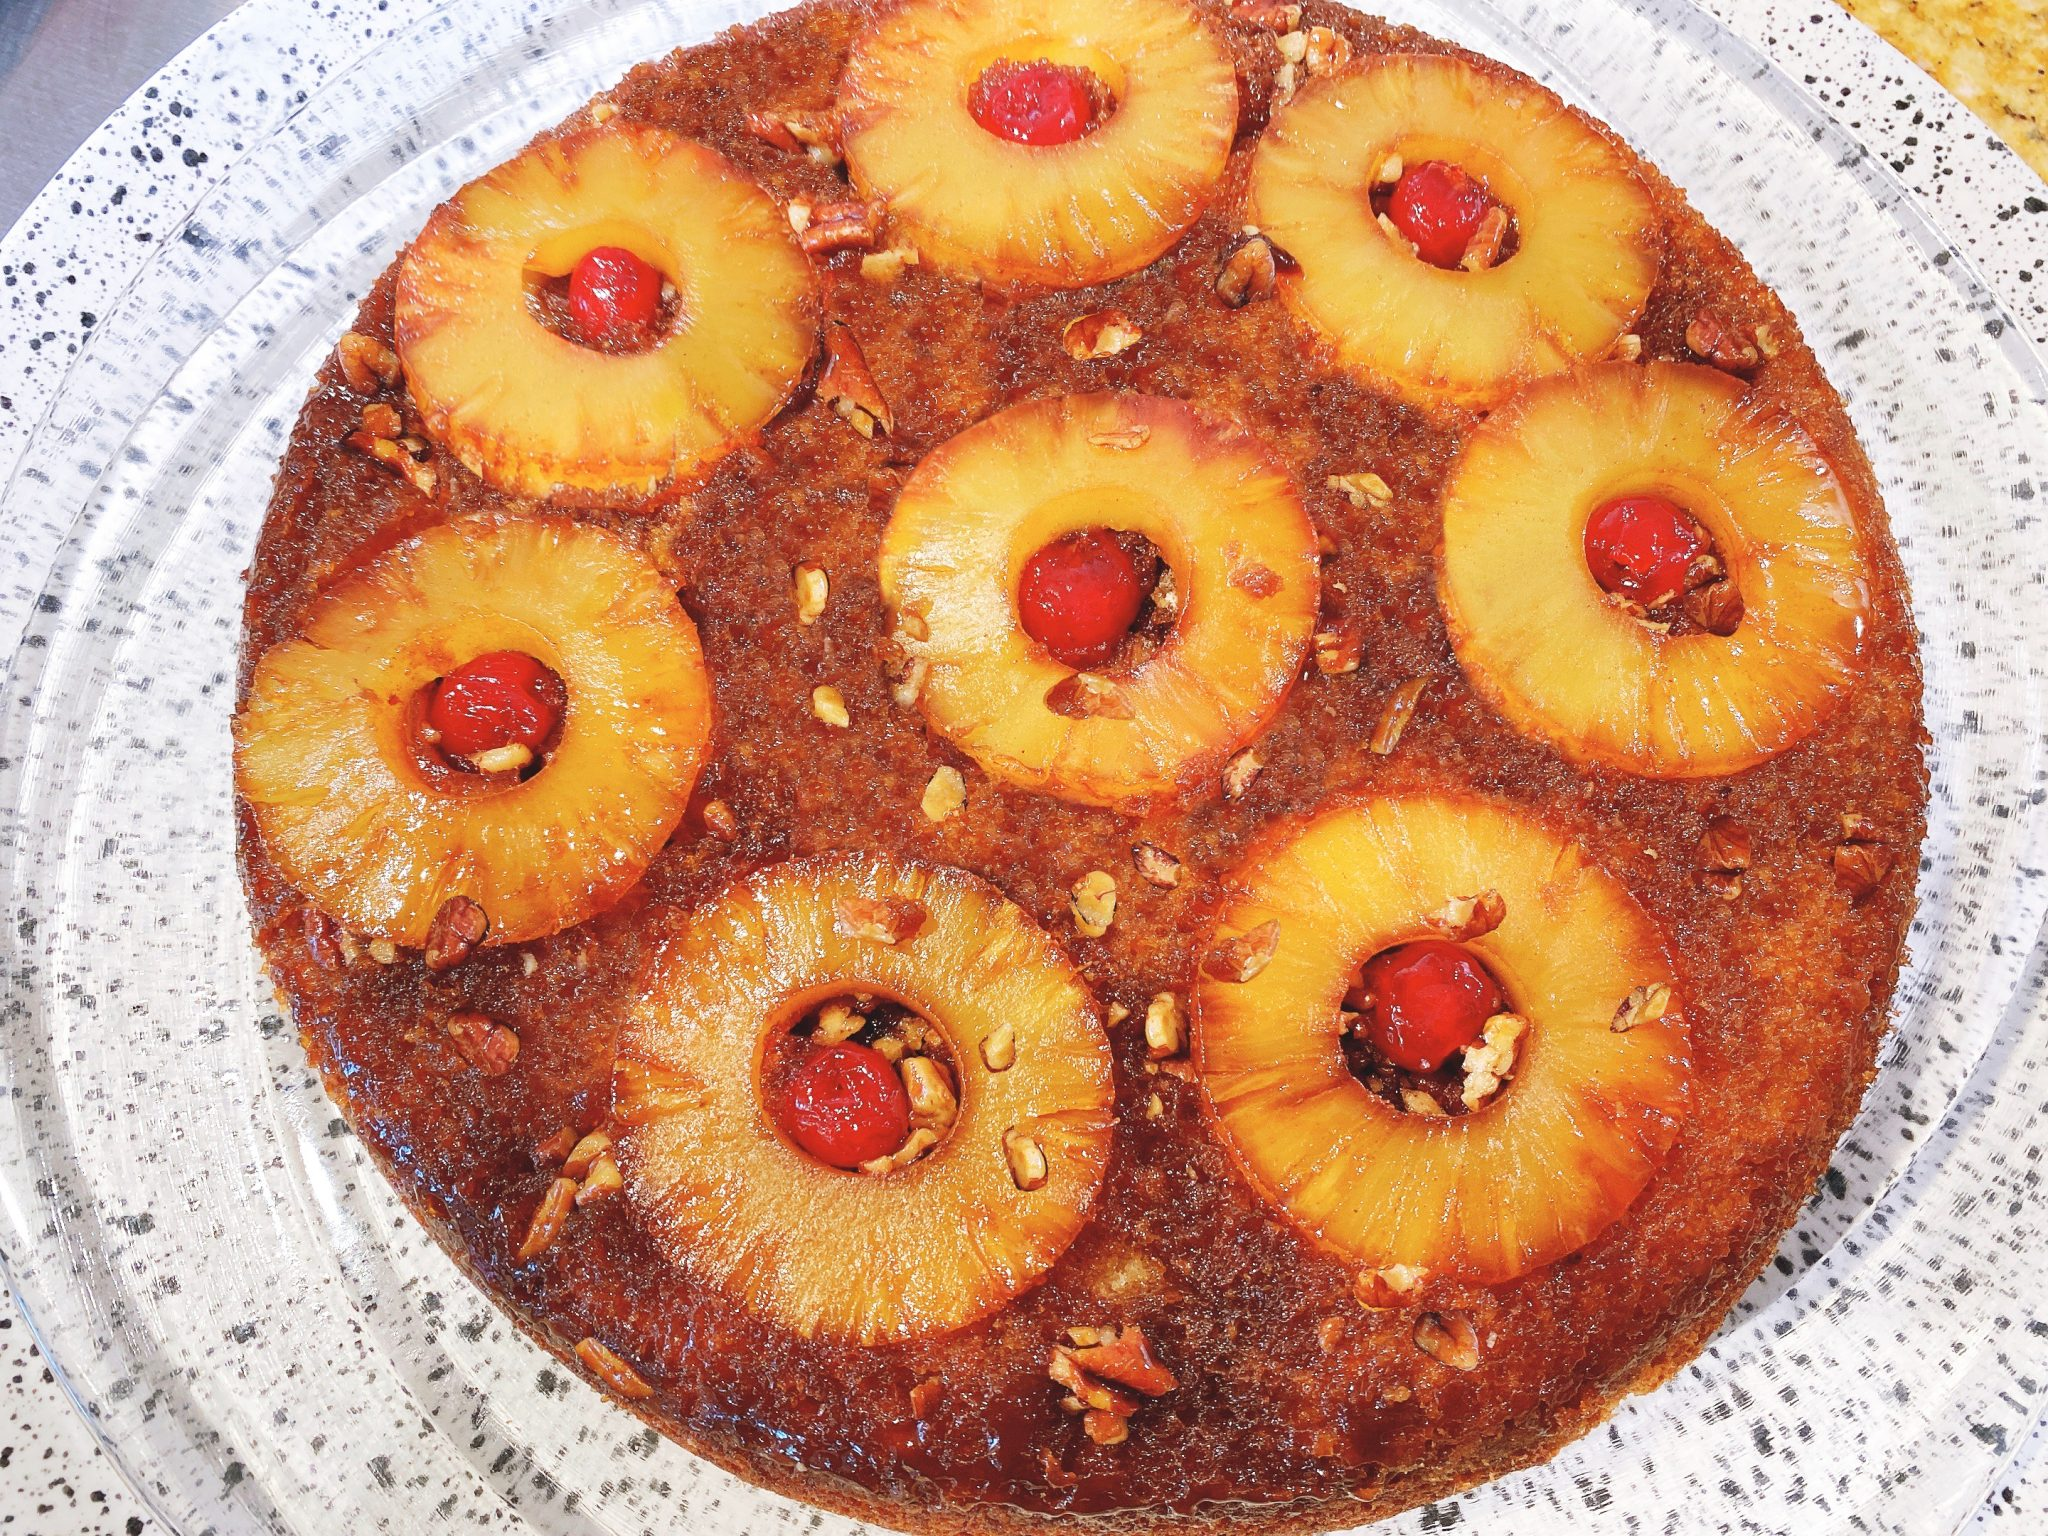 whole pineapple upside down cake with pineapple rings, pecans, brown sugar caramel and maraschino cherries